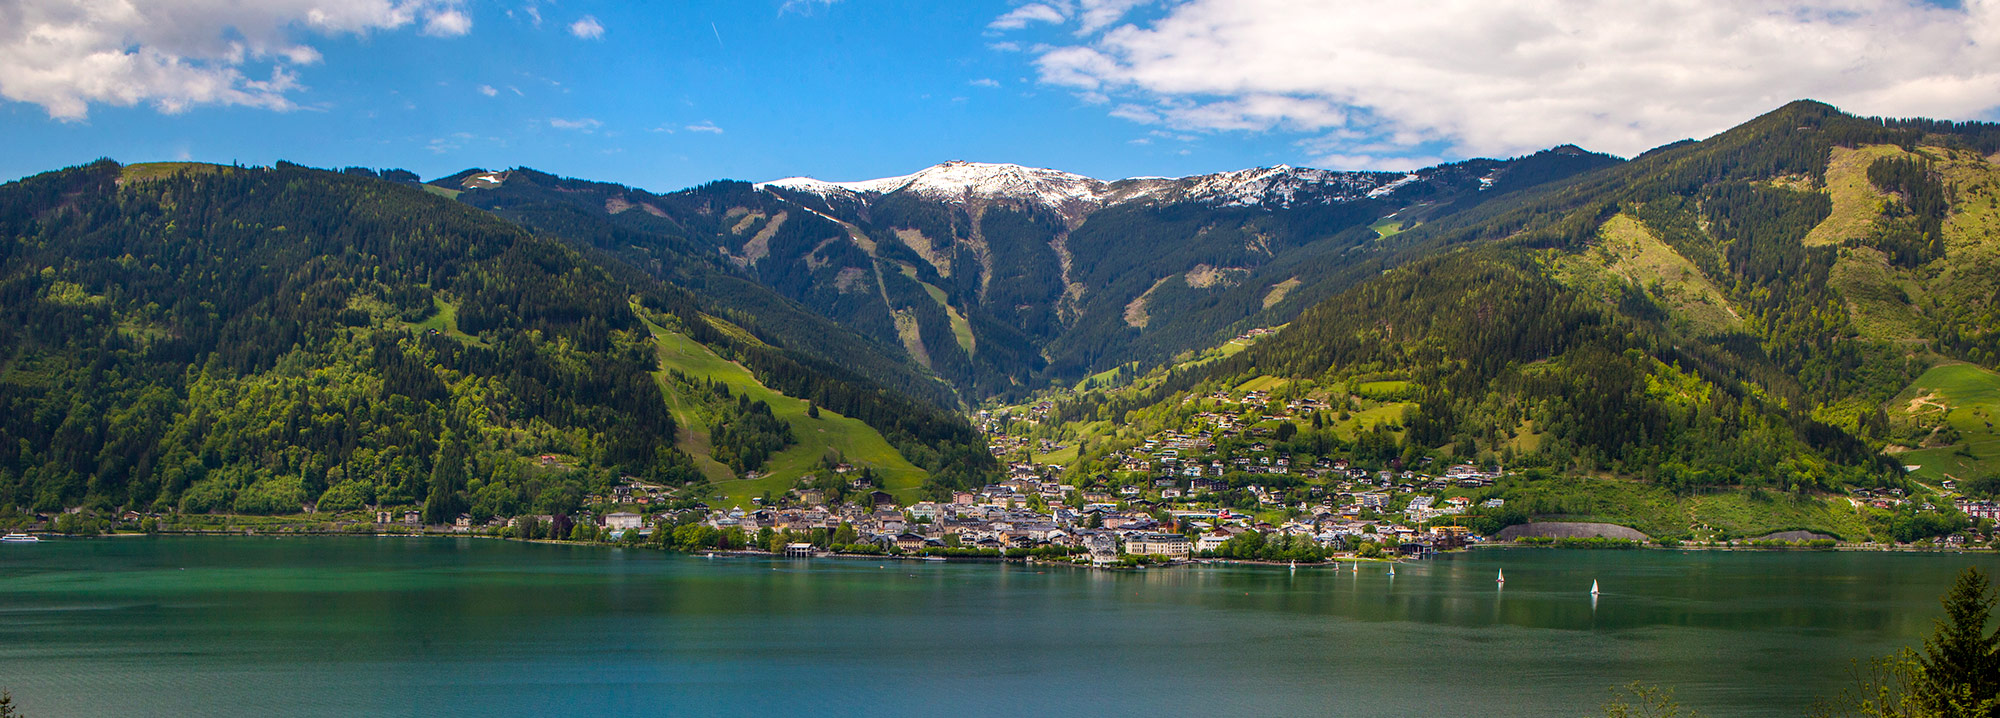 © Zell am See-Kaprun Tourismus / Faistauer Photography